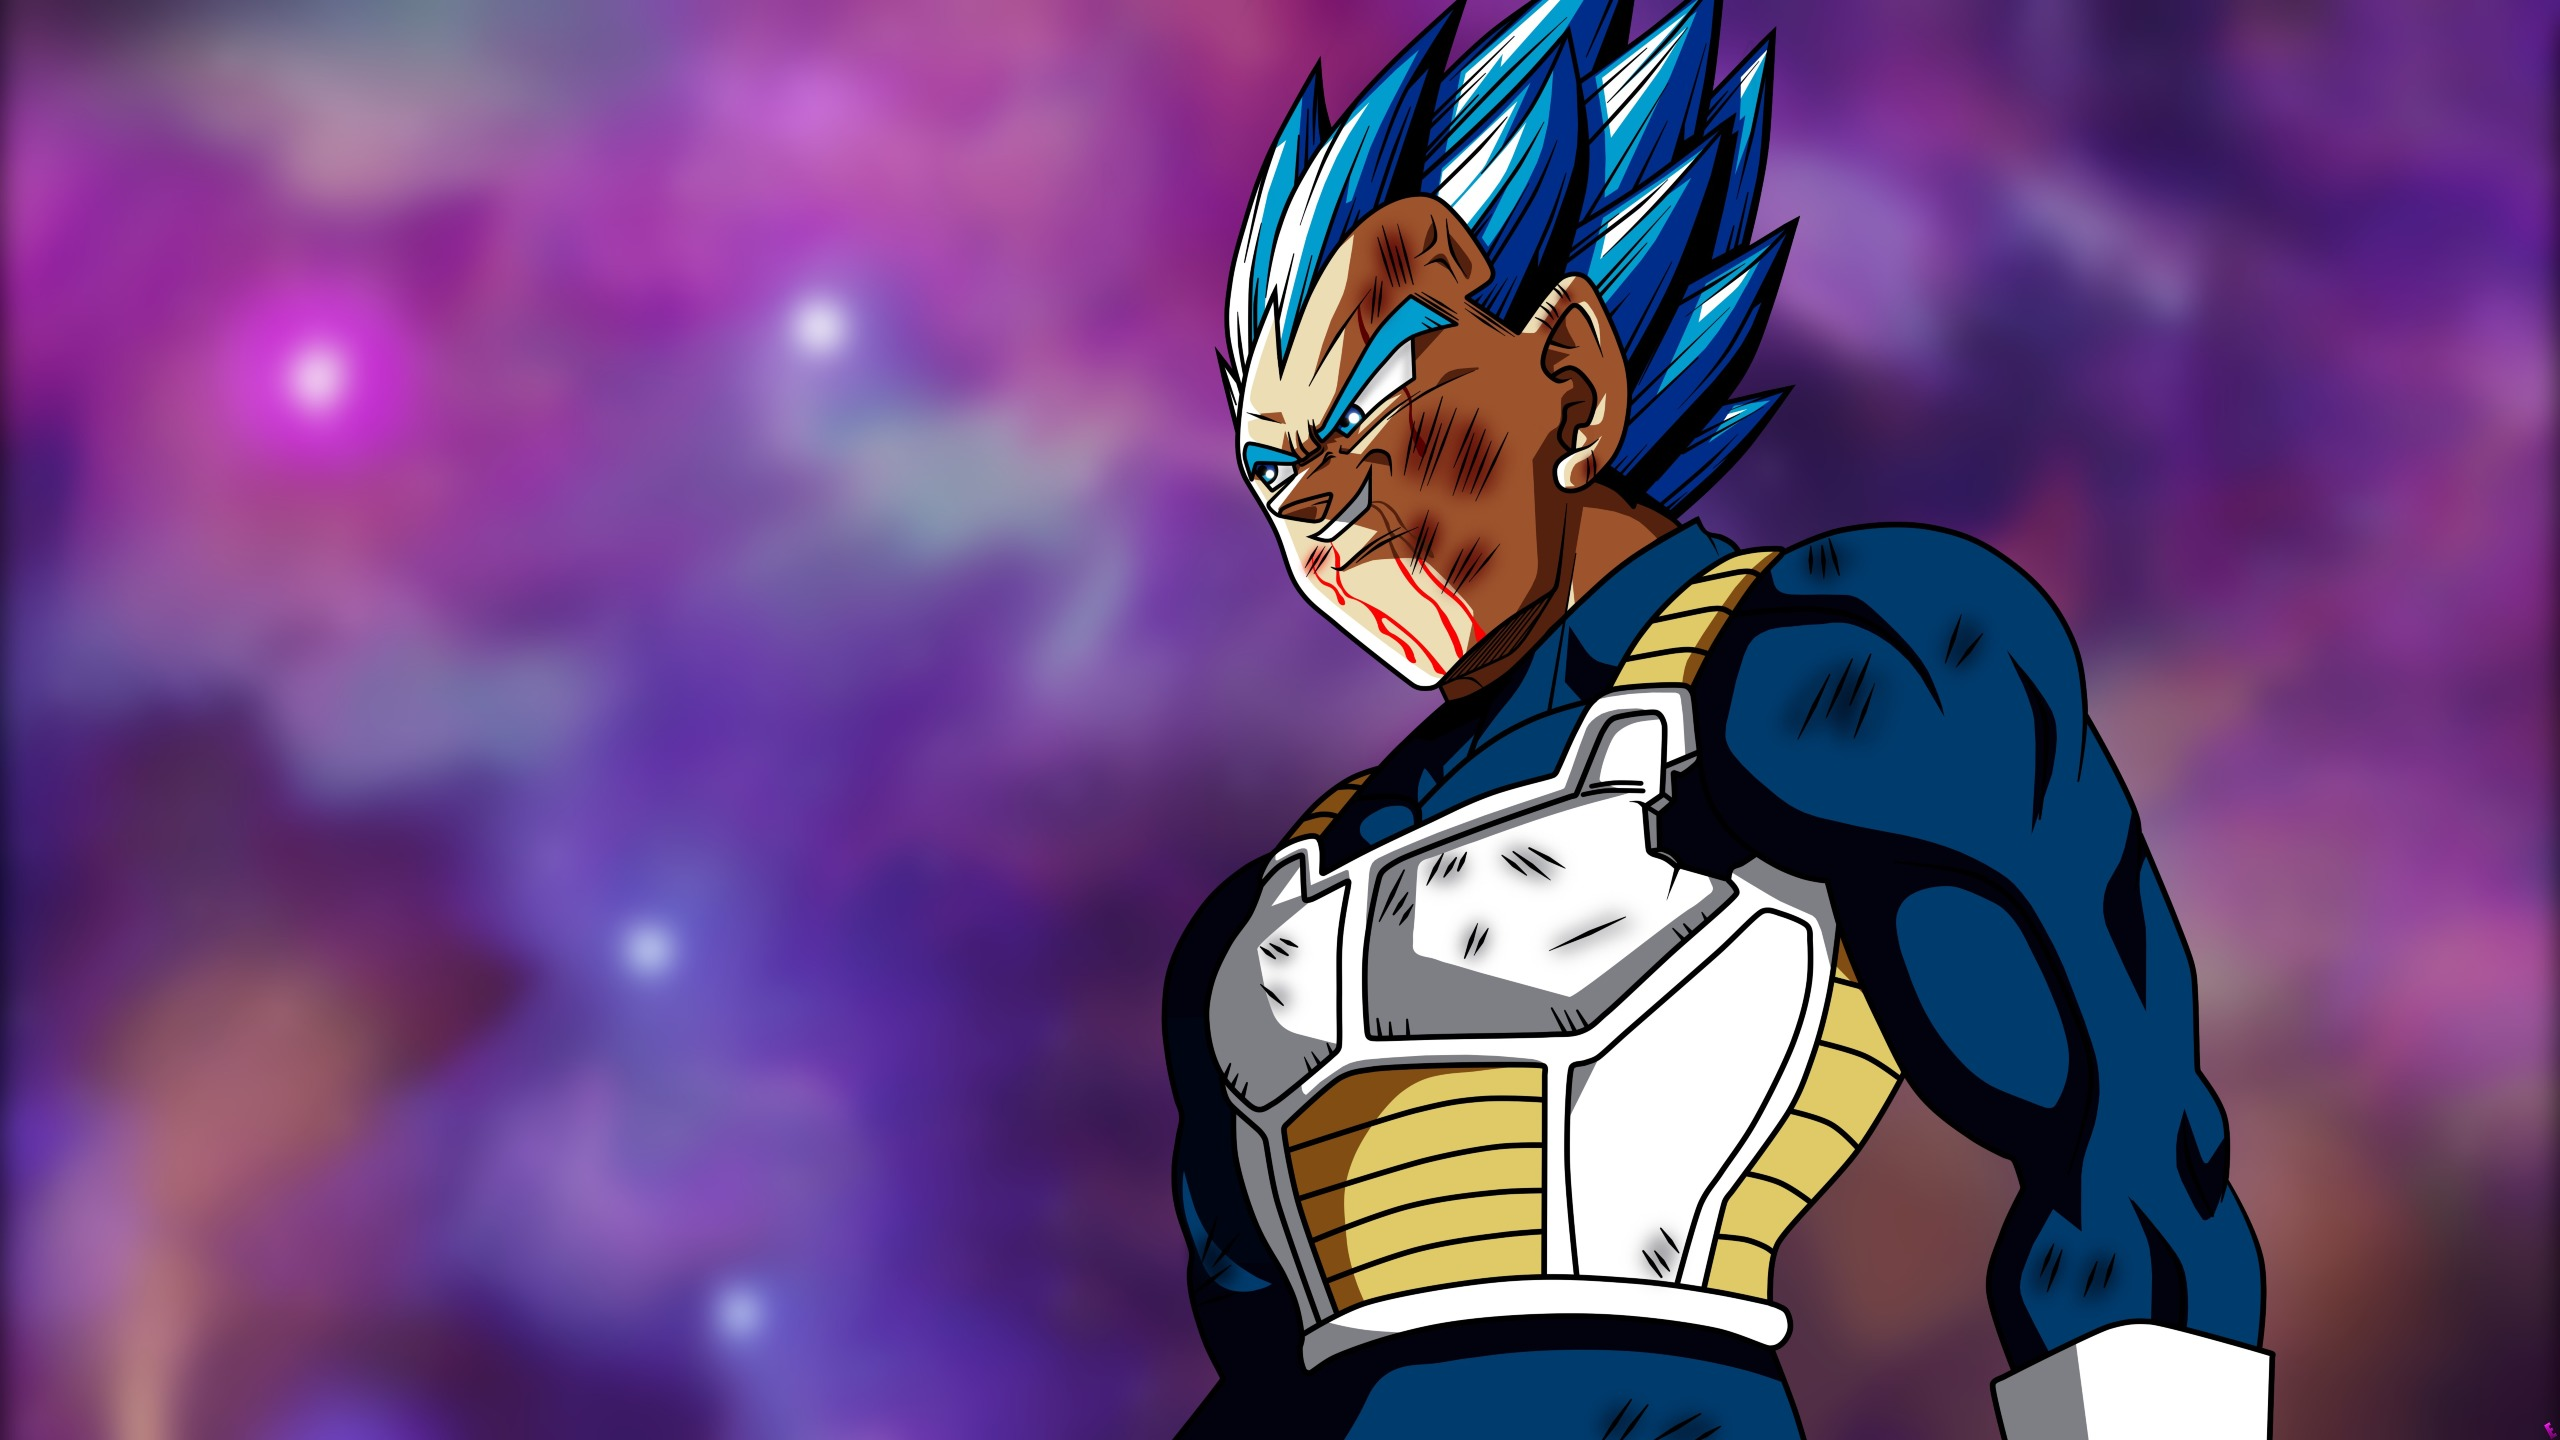 Vegeta dragon ball goku hd 8k wallpaper - Vegeta wallpapers for mobile ...